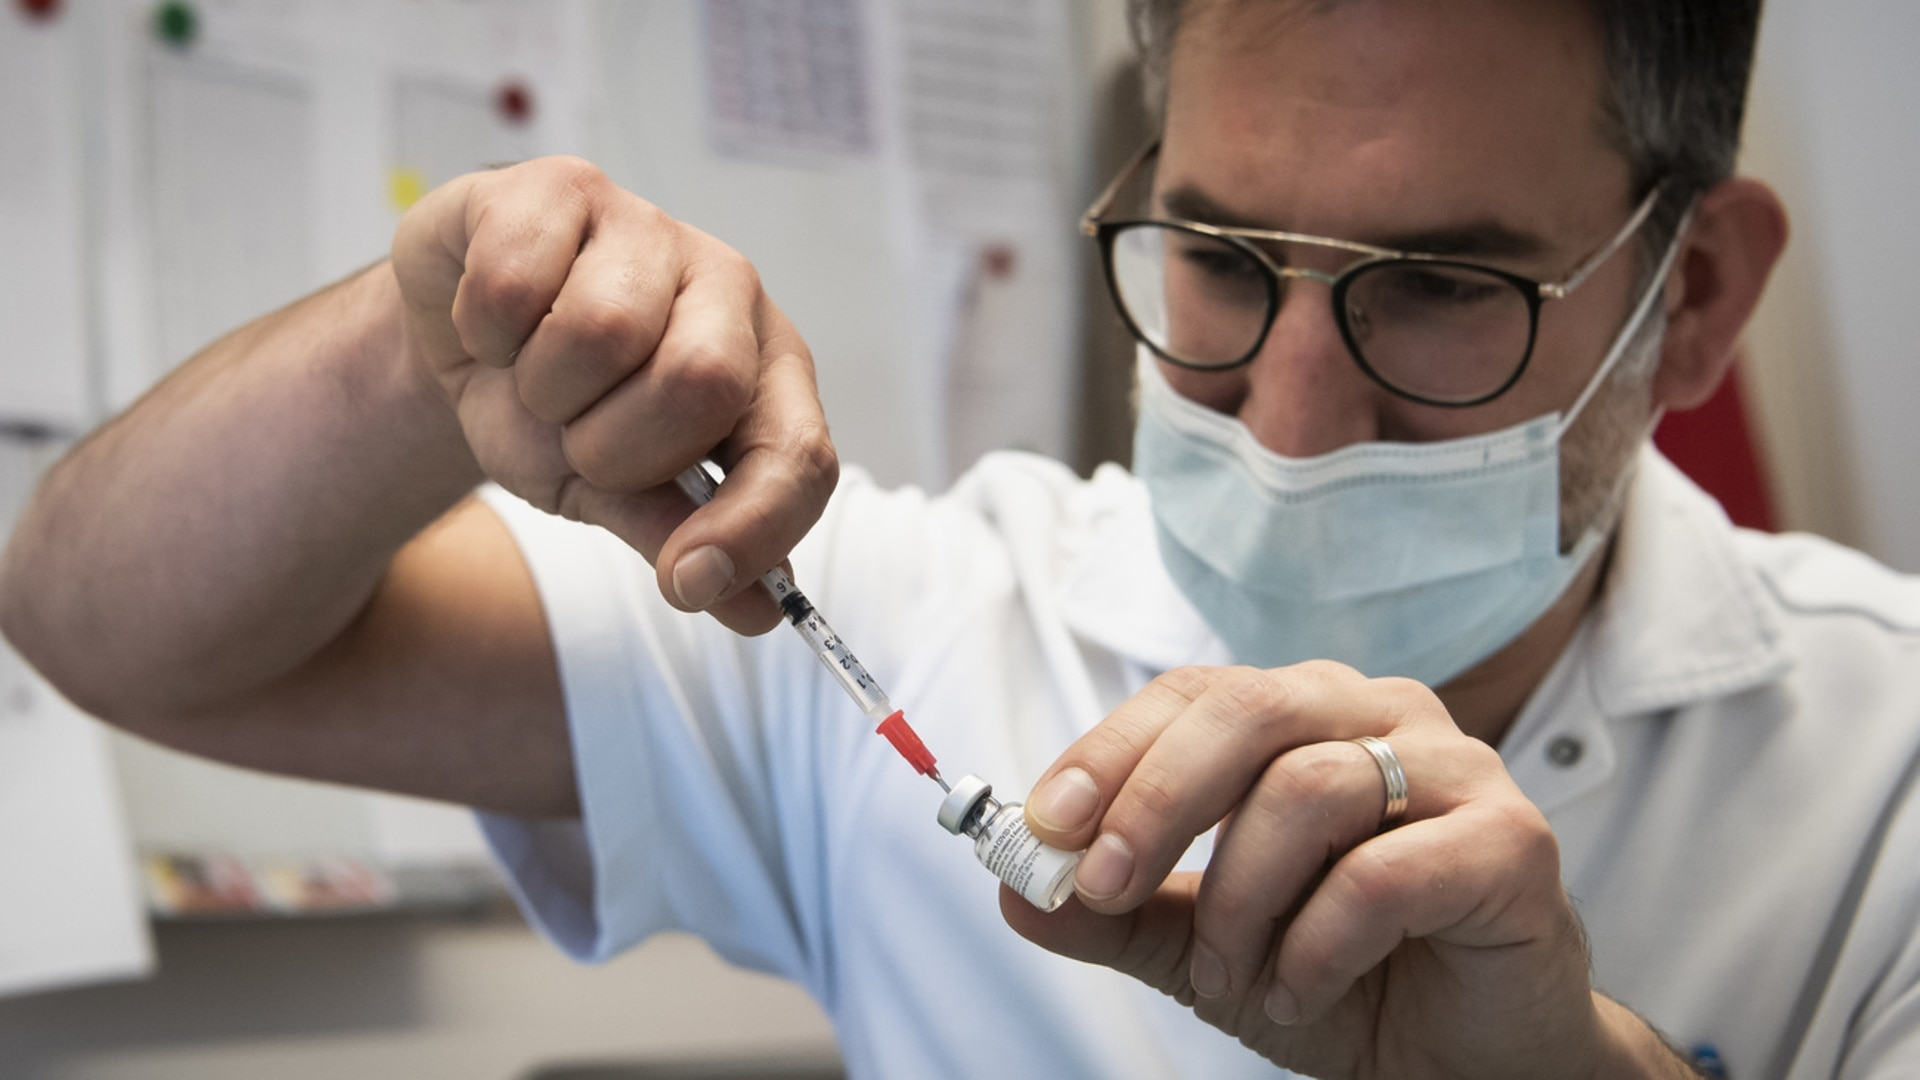 How vaccine technology, choice and supply work in Switzerland